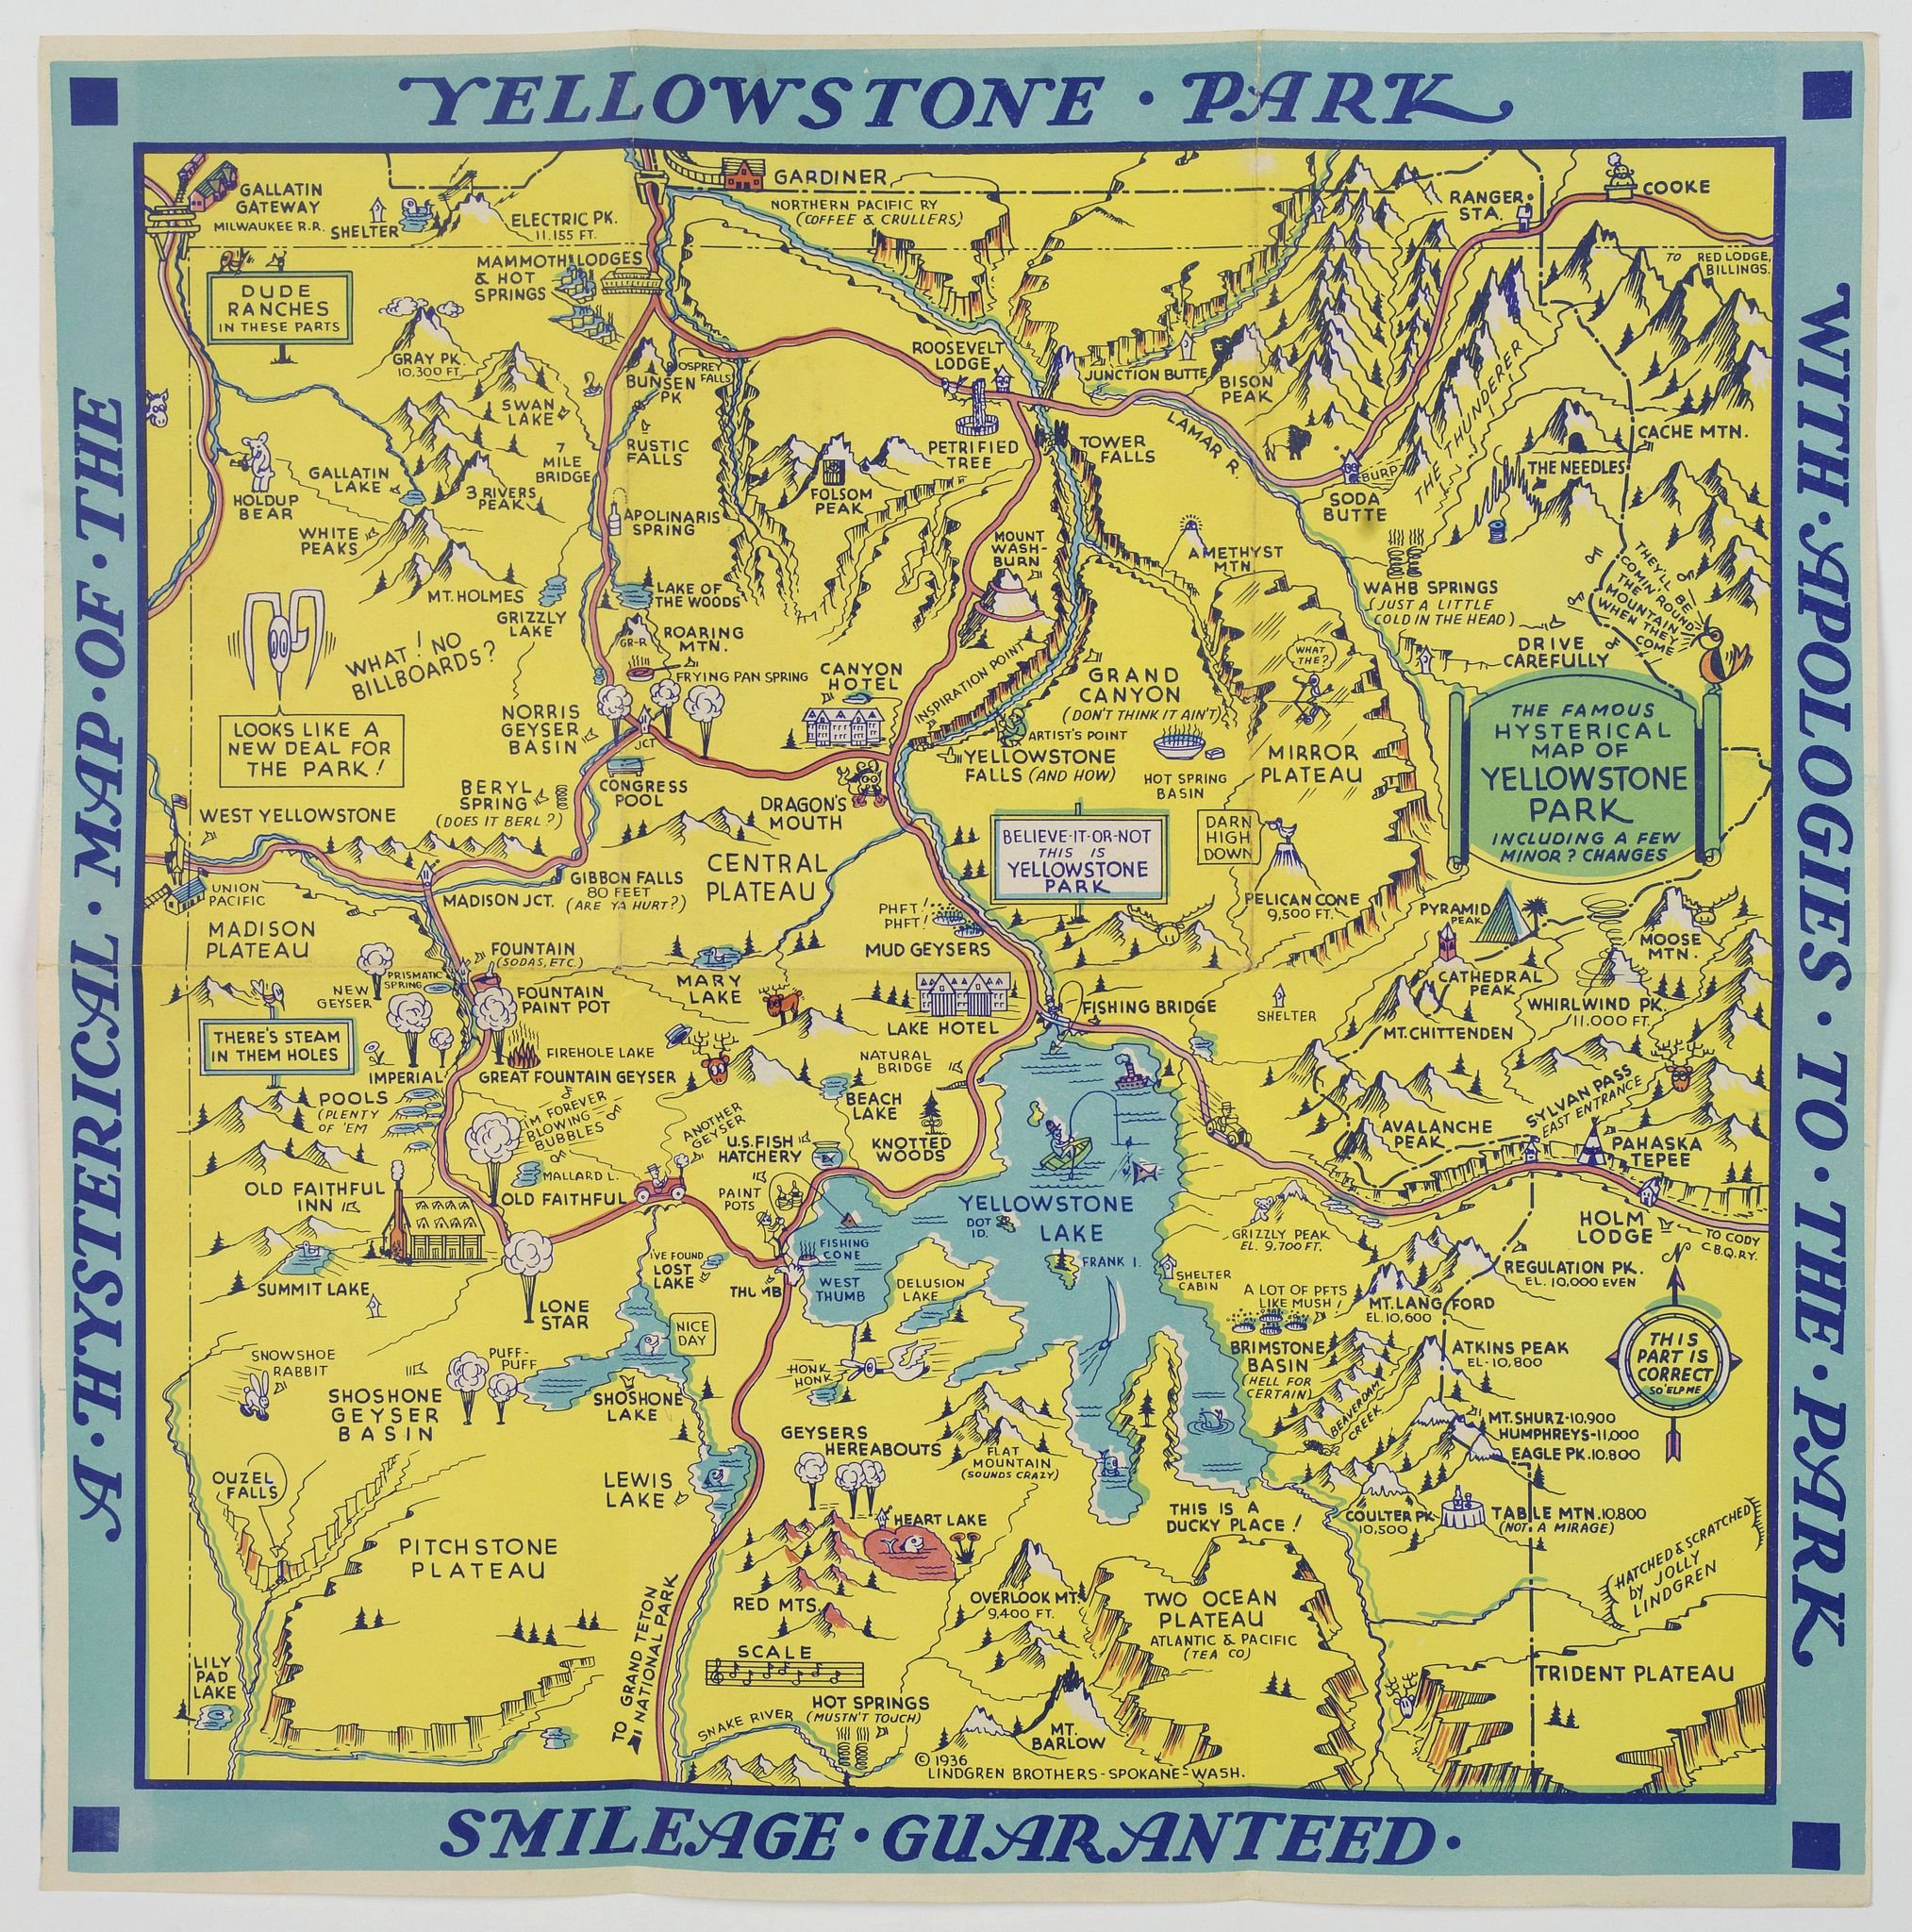 LINDGREN BROTHERS.,  A Hysterical Map of the Yellowstone Park. . ., antique map, old maps